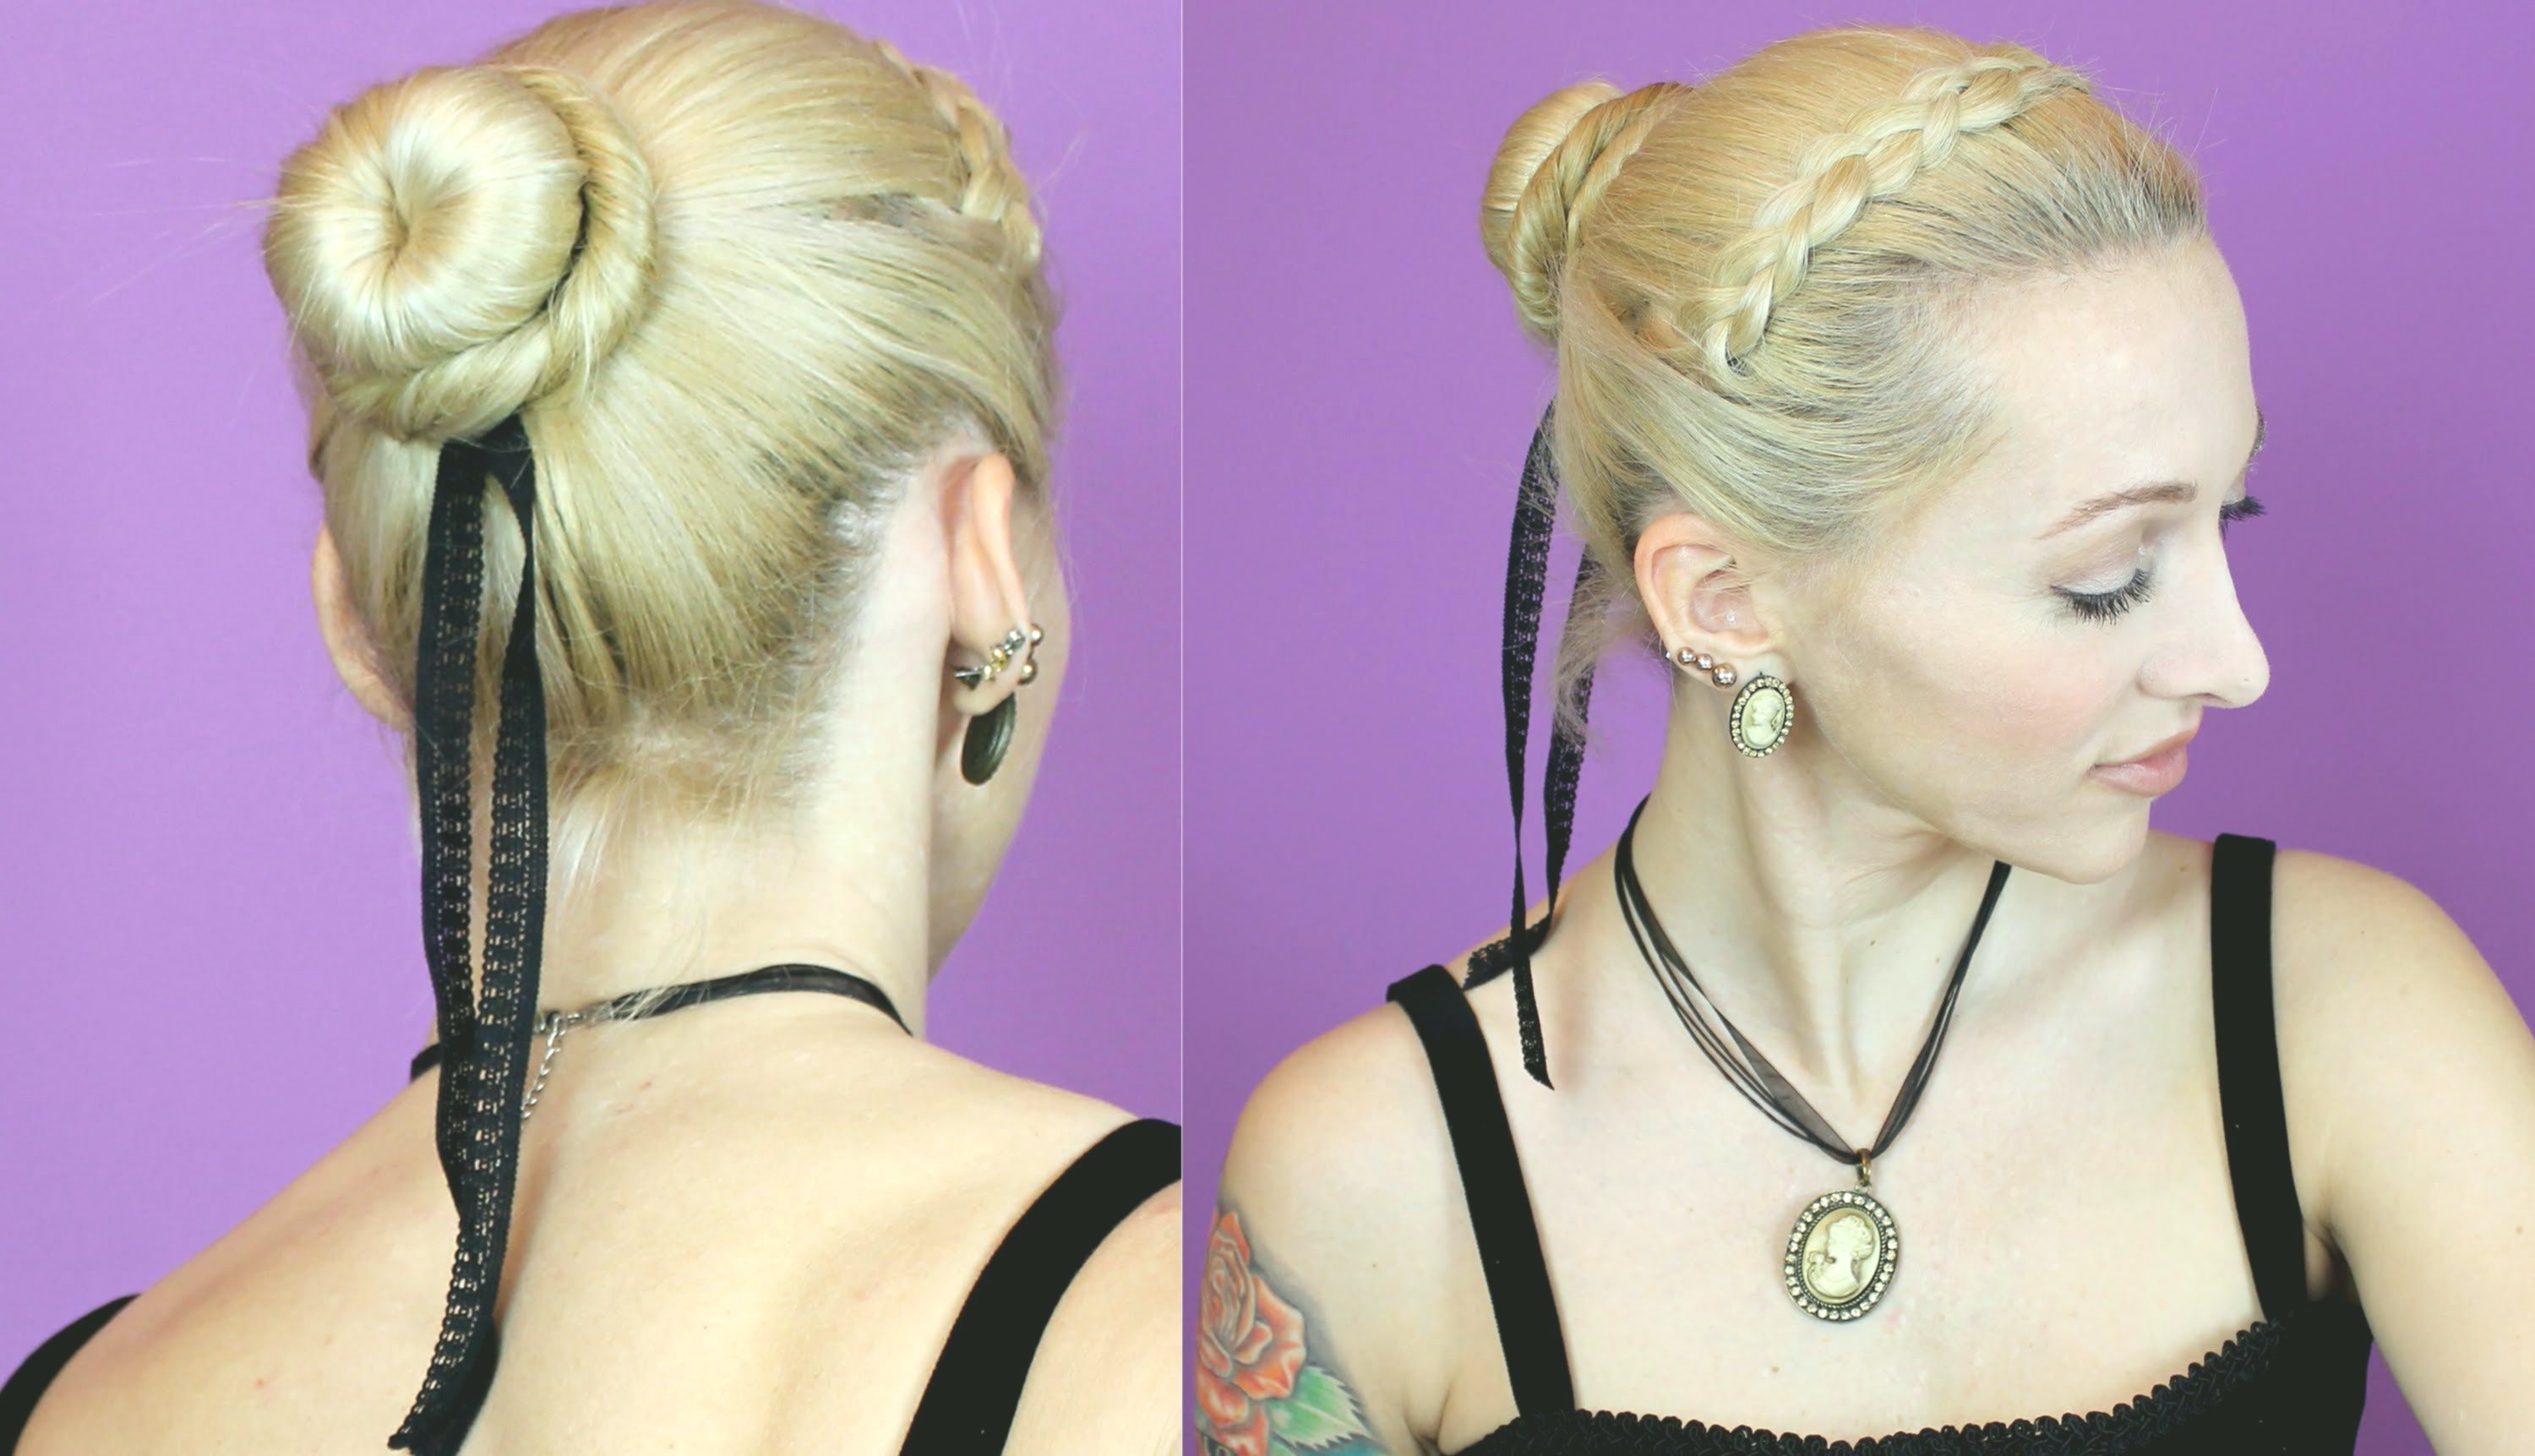 new hairstyles instruction plan-Awesome hairstyles instructions wall